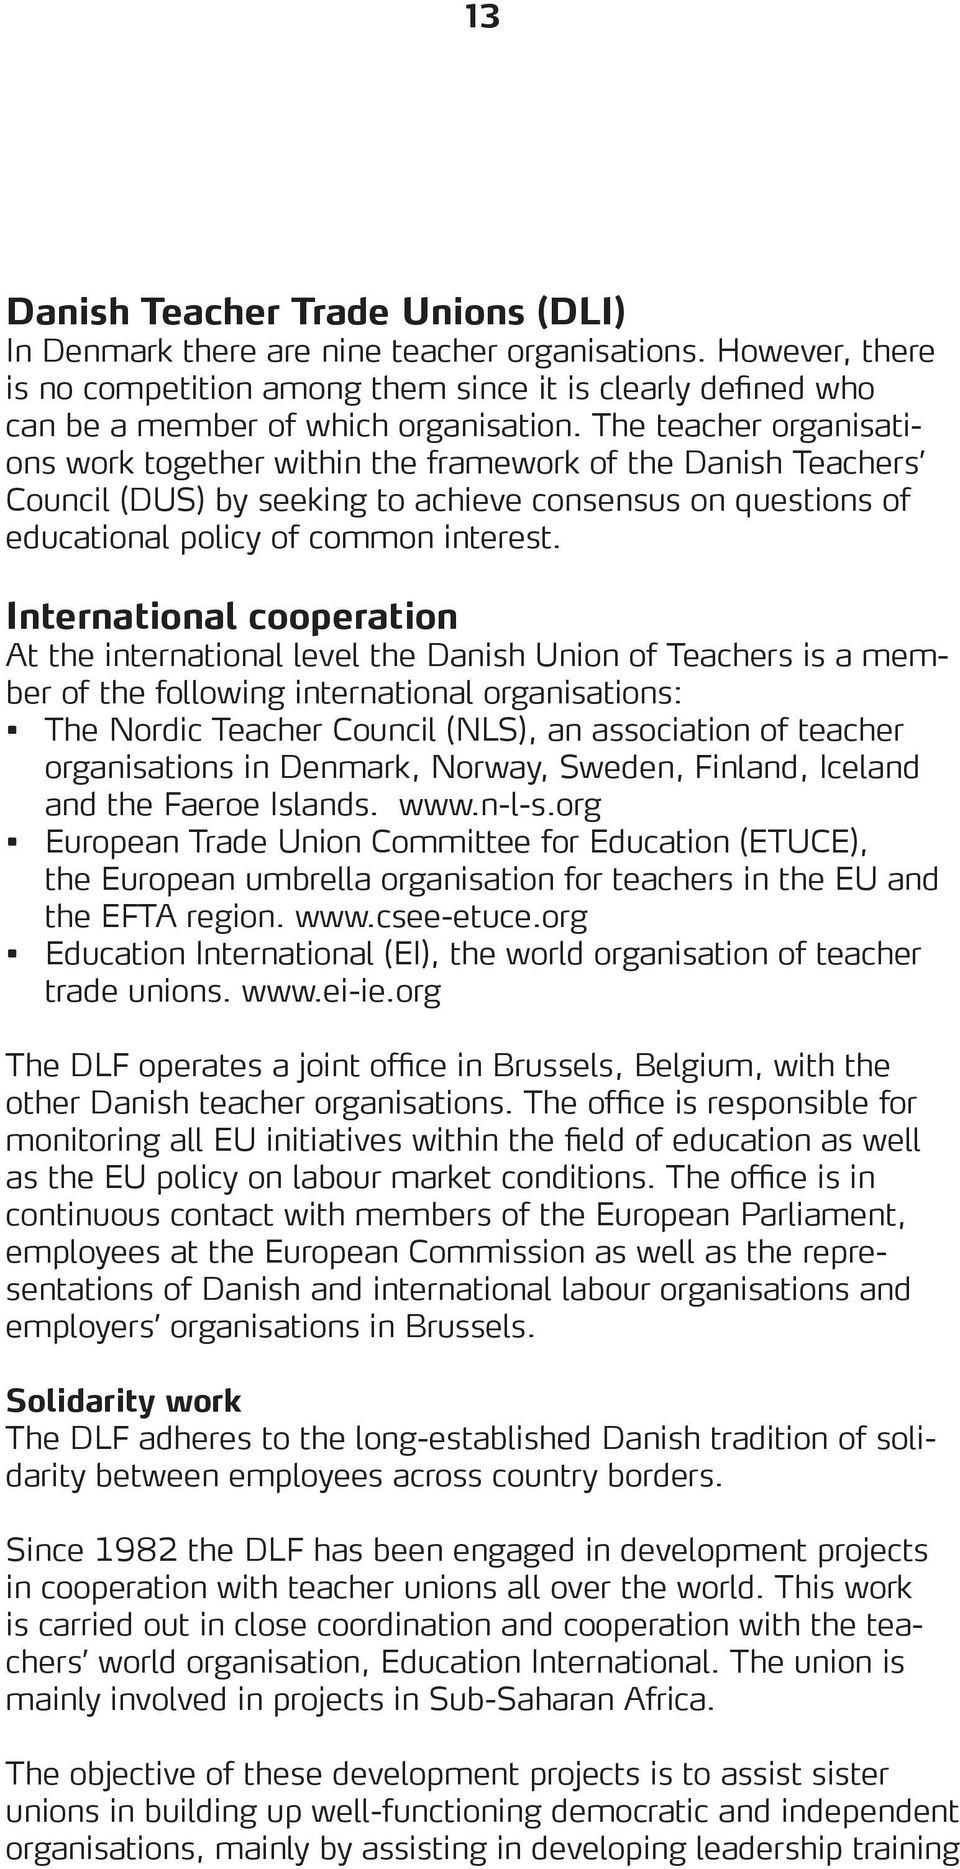 International cooperation At the international level the Danish Union of Teachers is a member of the following international organisations: The Nordic Teacher Council (NLS), an association of teacher